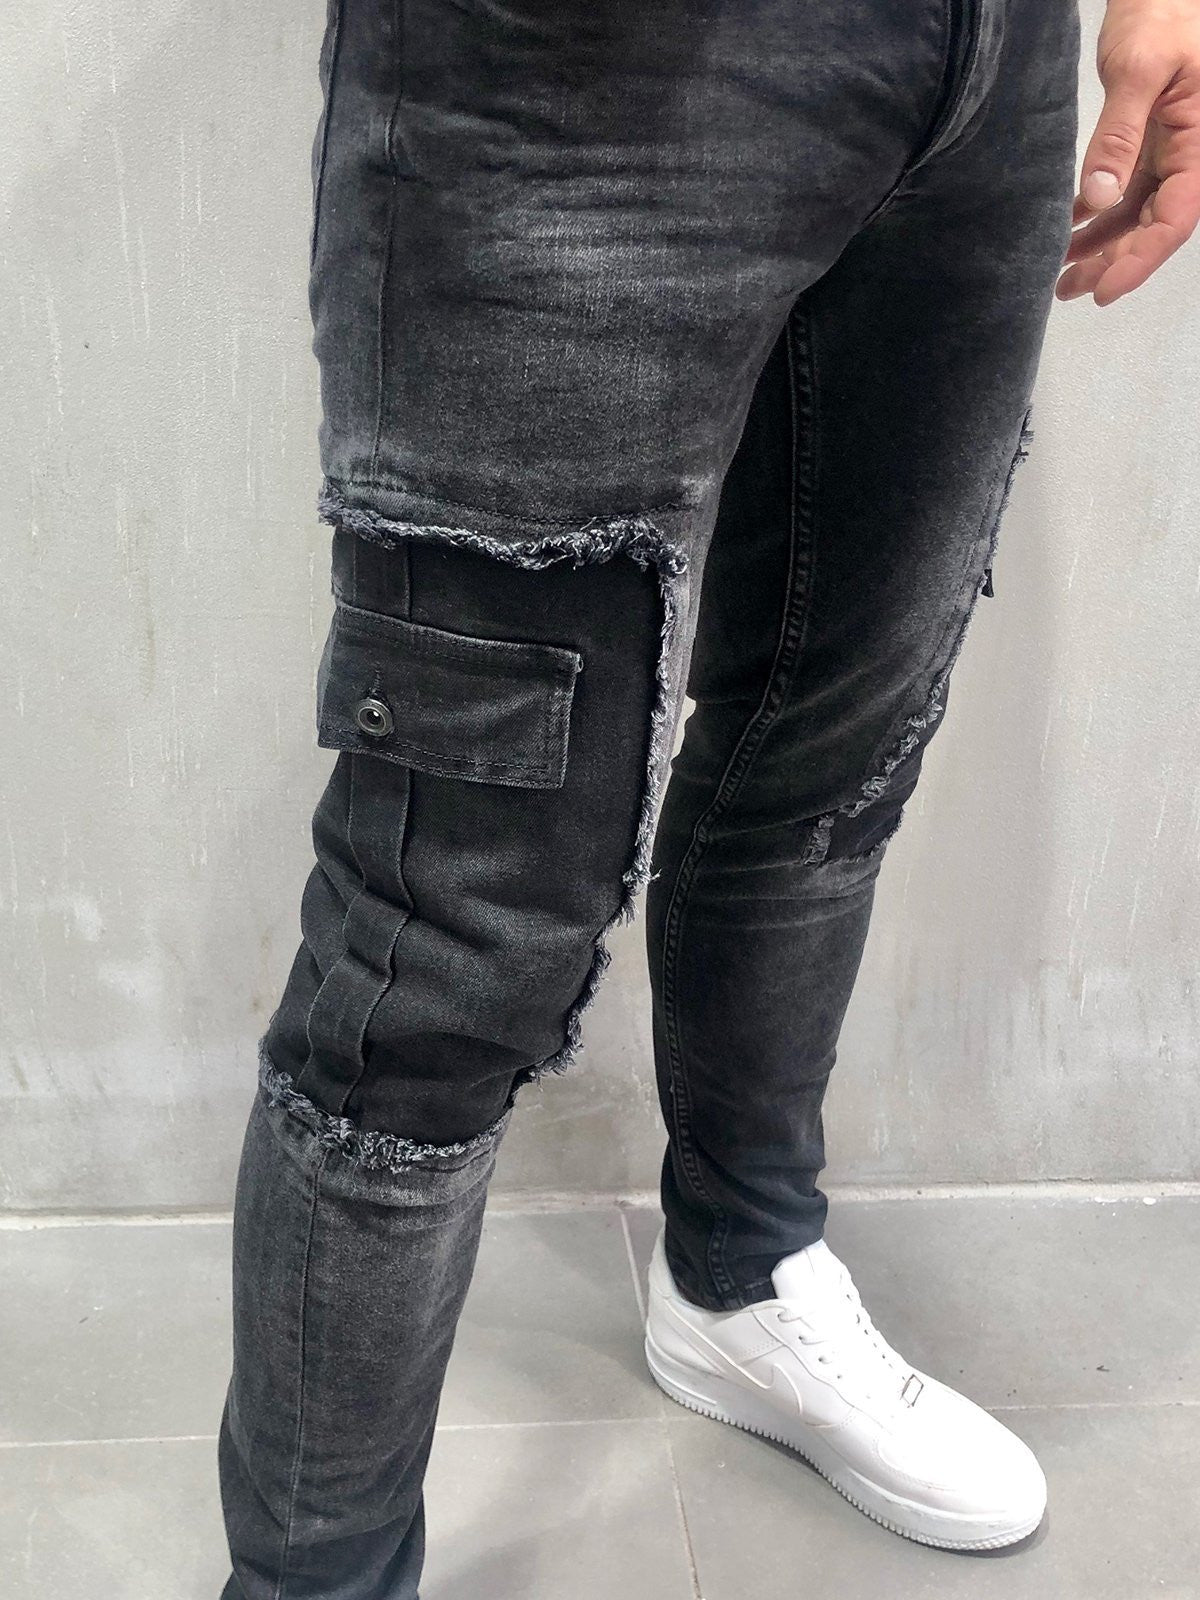 Distressed Jeans Patched Cargo Pockets 4056